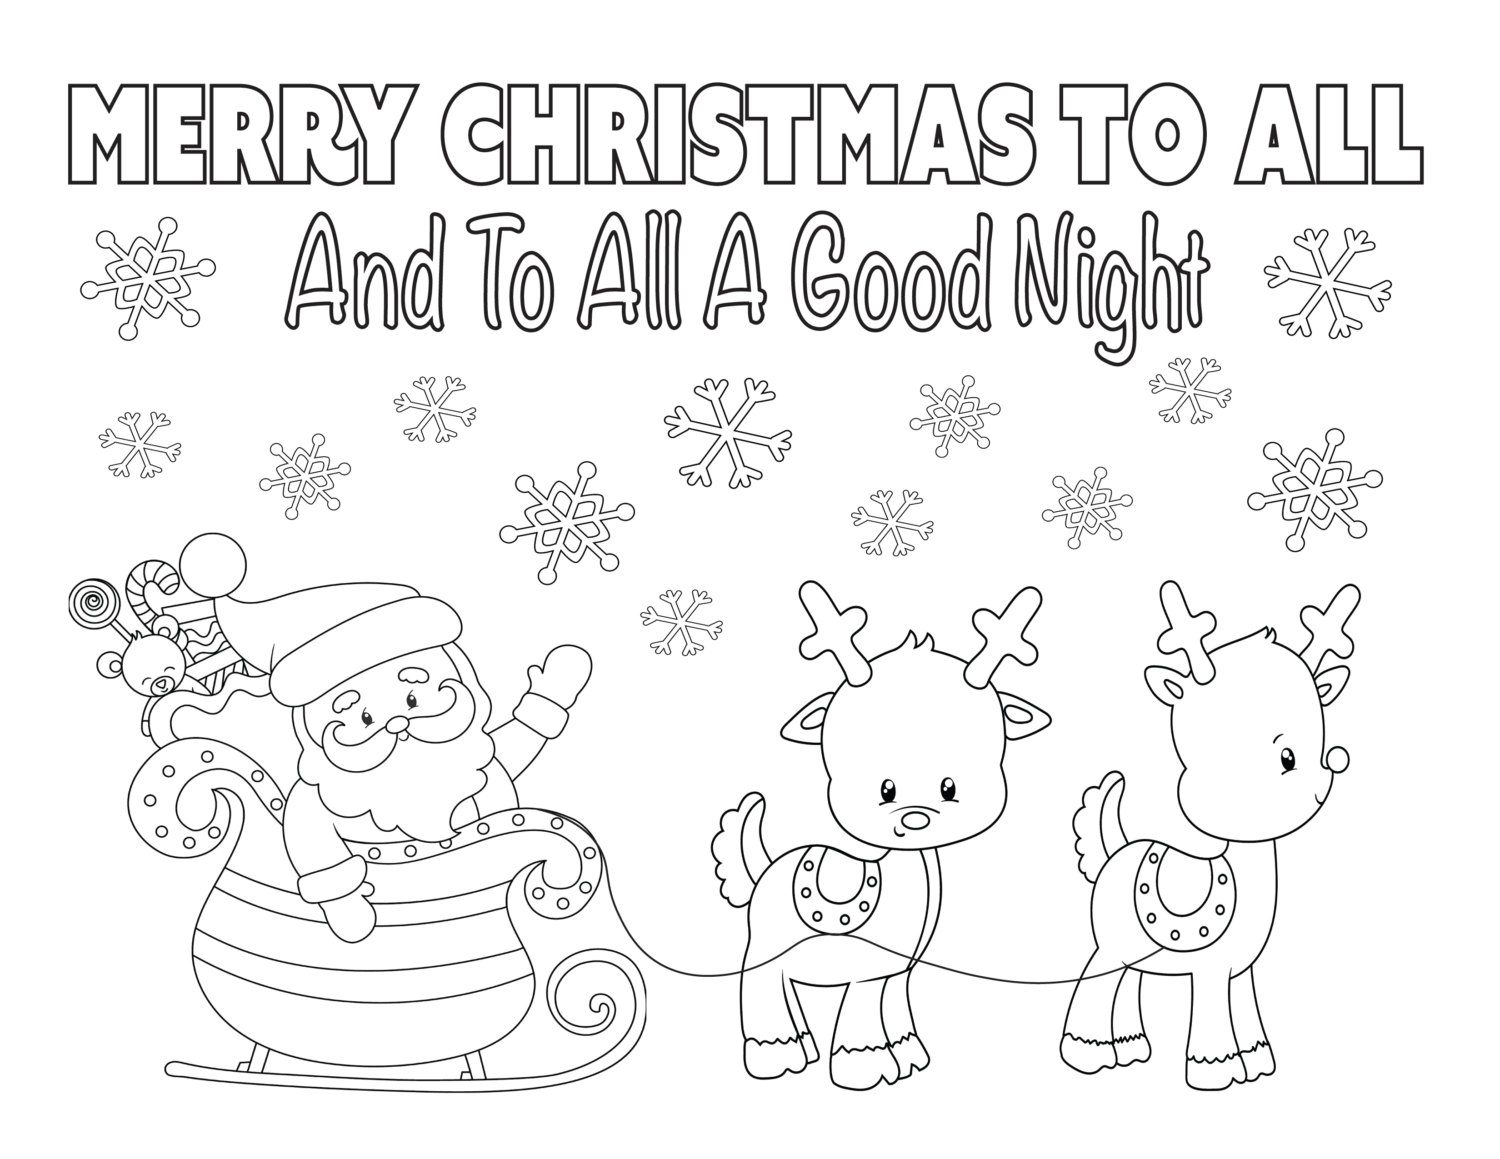 Russian Christmas Coloring Pages With Page 8 5x11 Instant Download Printable Etsy